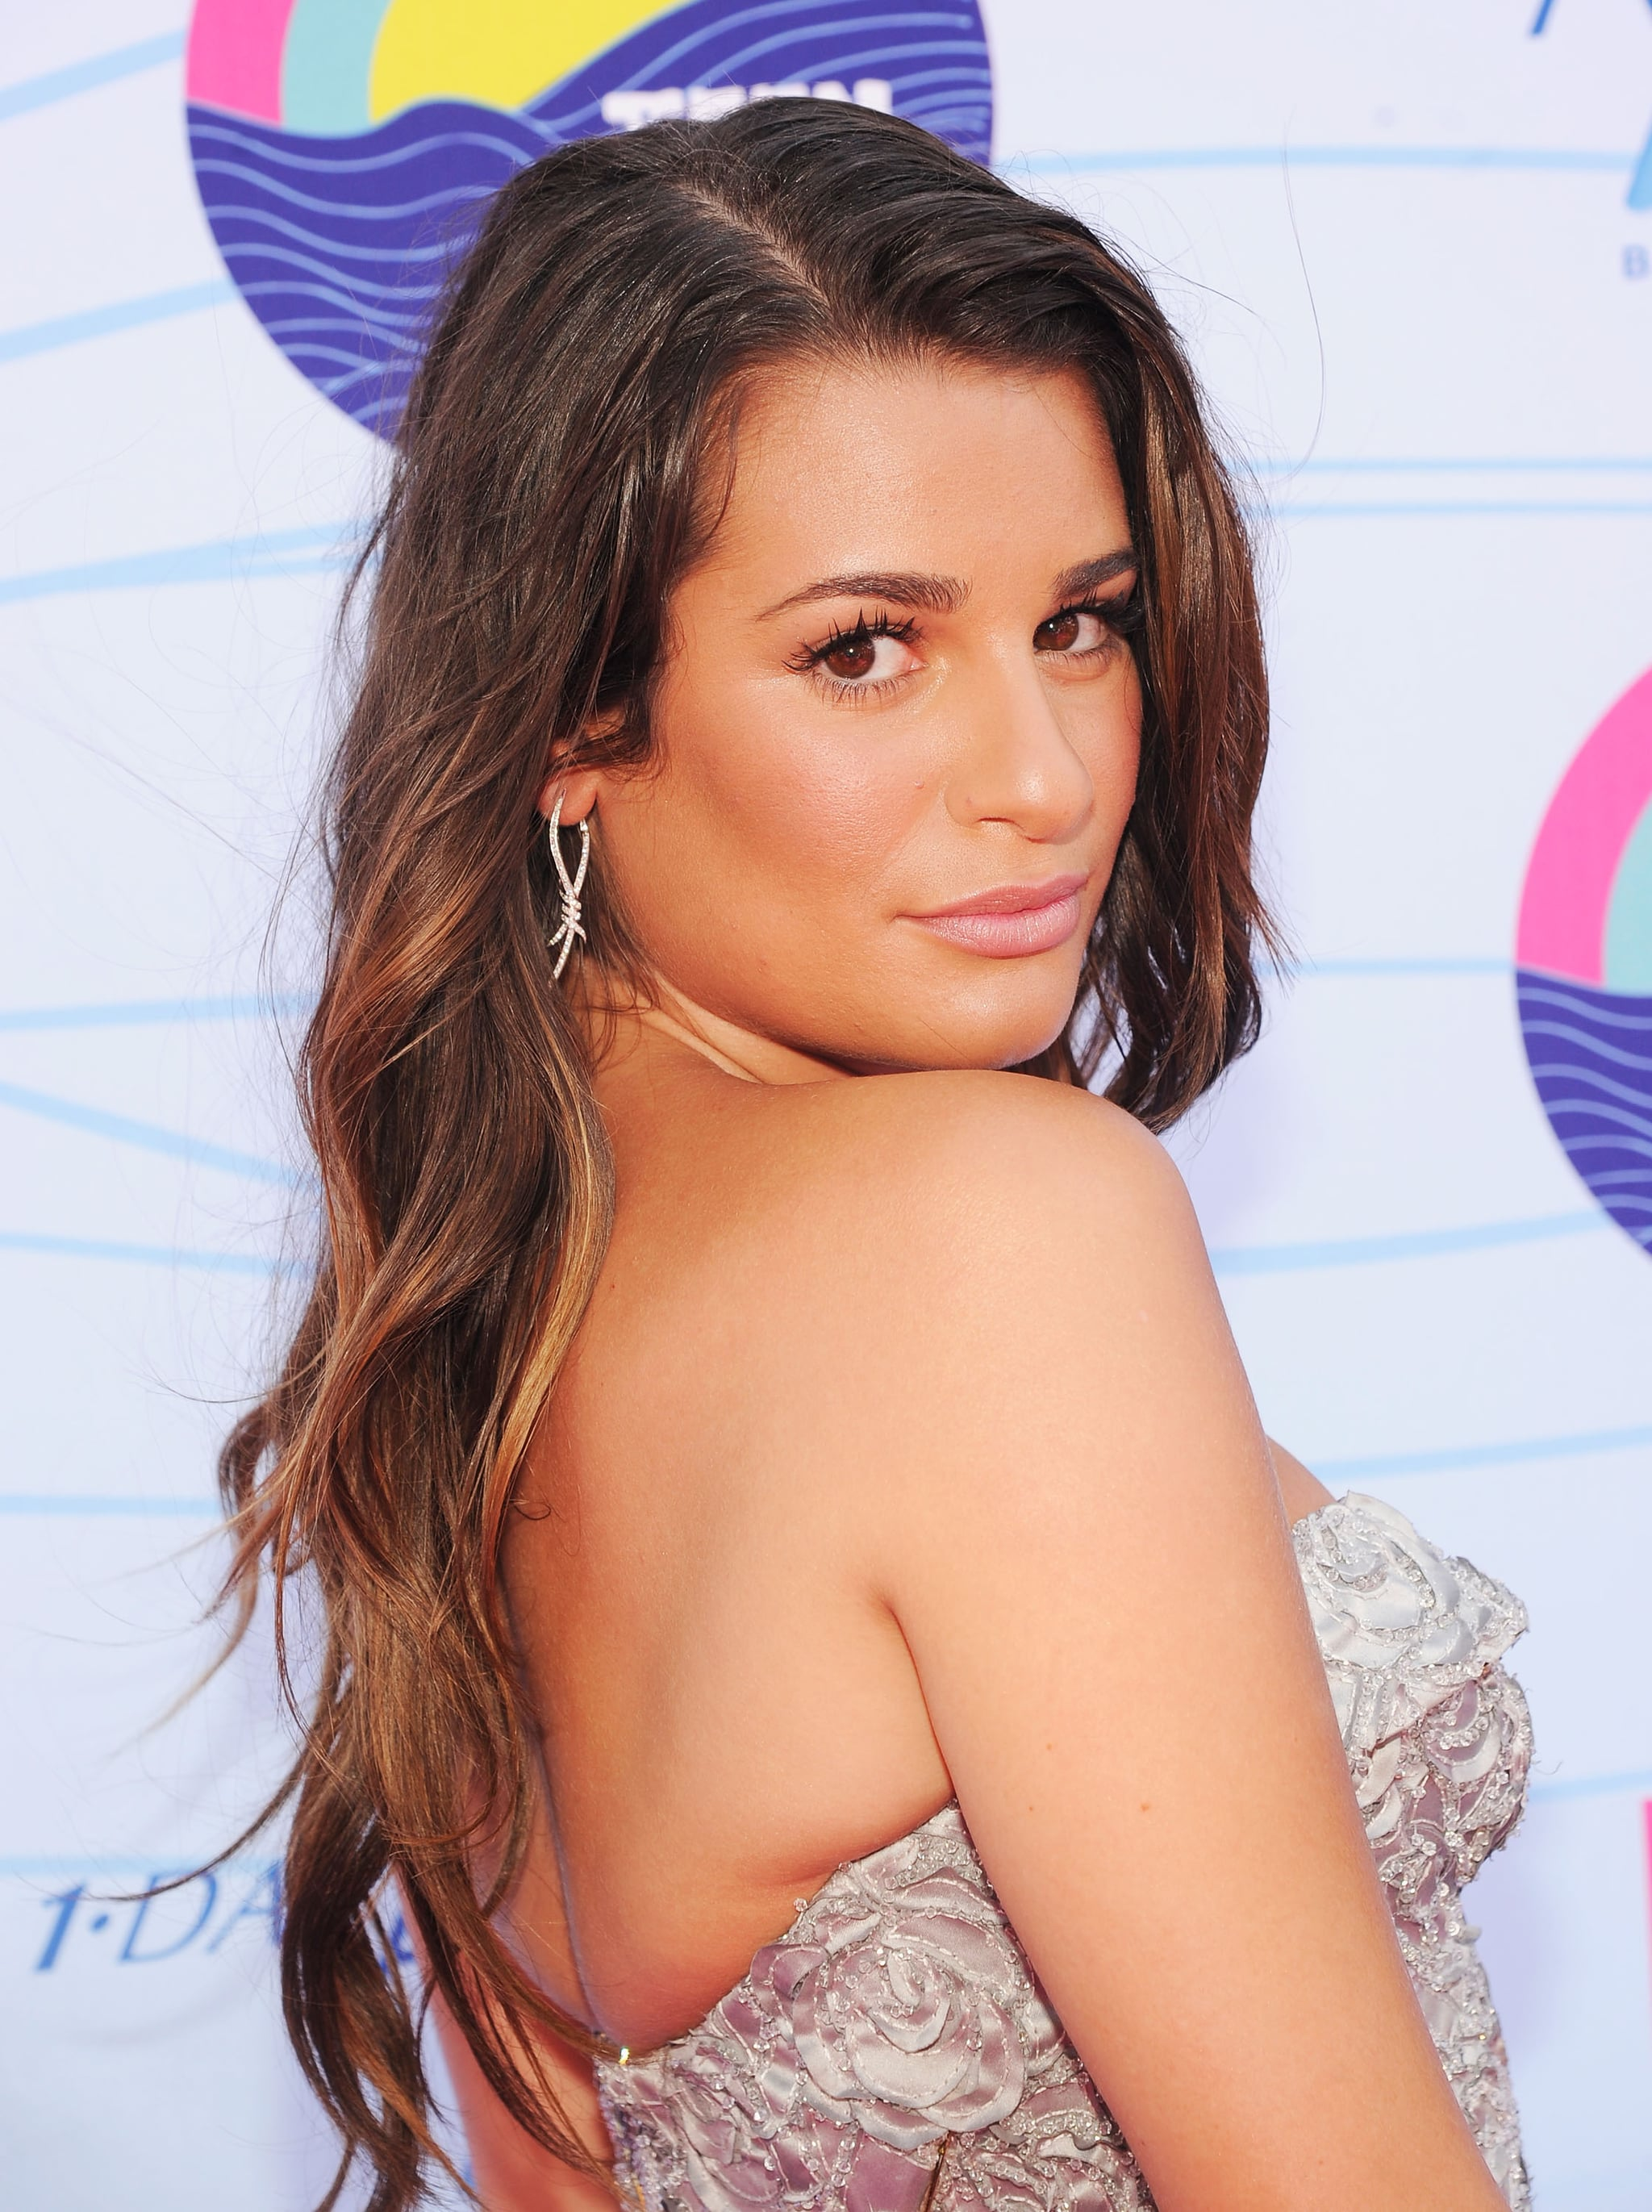 Lea Michele struck a sexy pose at the Teen Choice Awards.